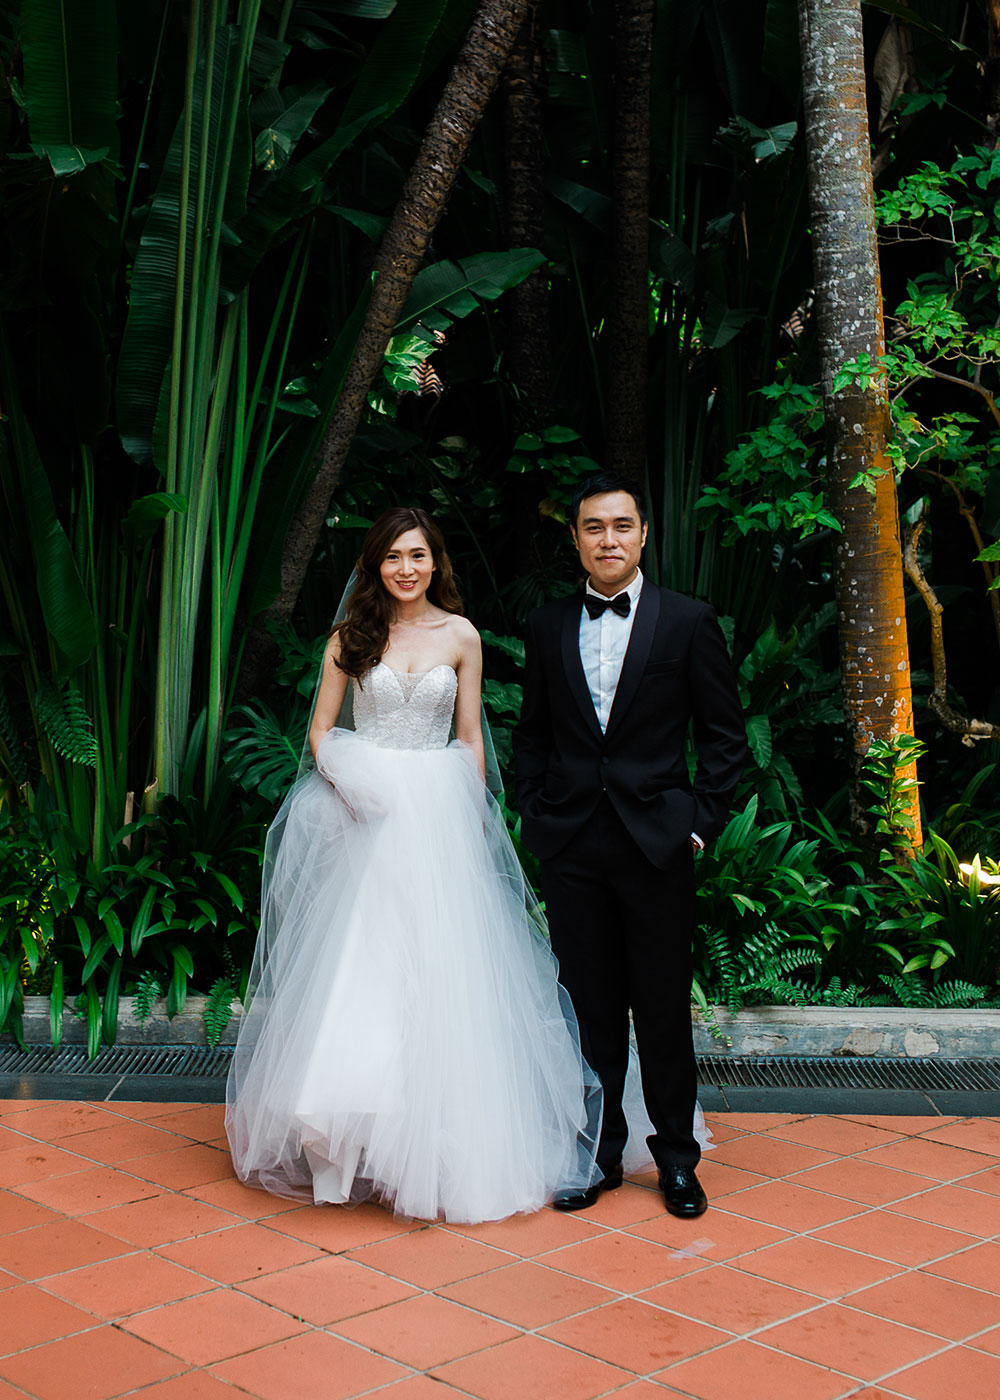 Singaore-Raffles-Hotel-Wedding-portrait